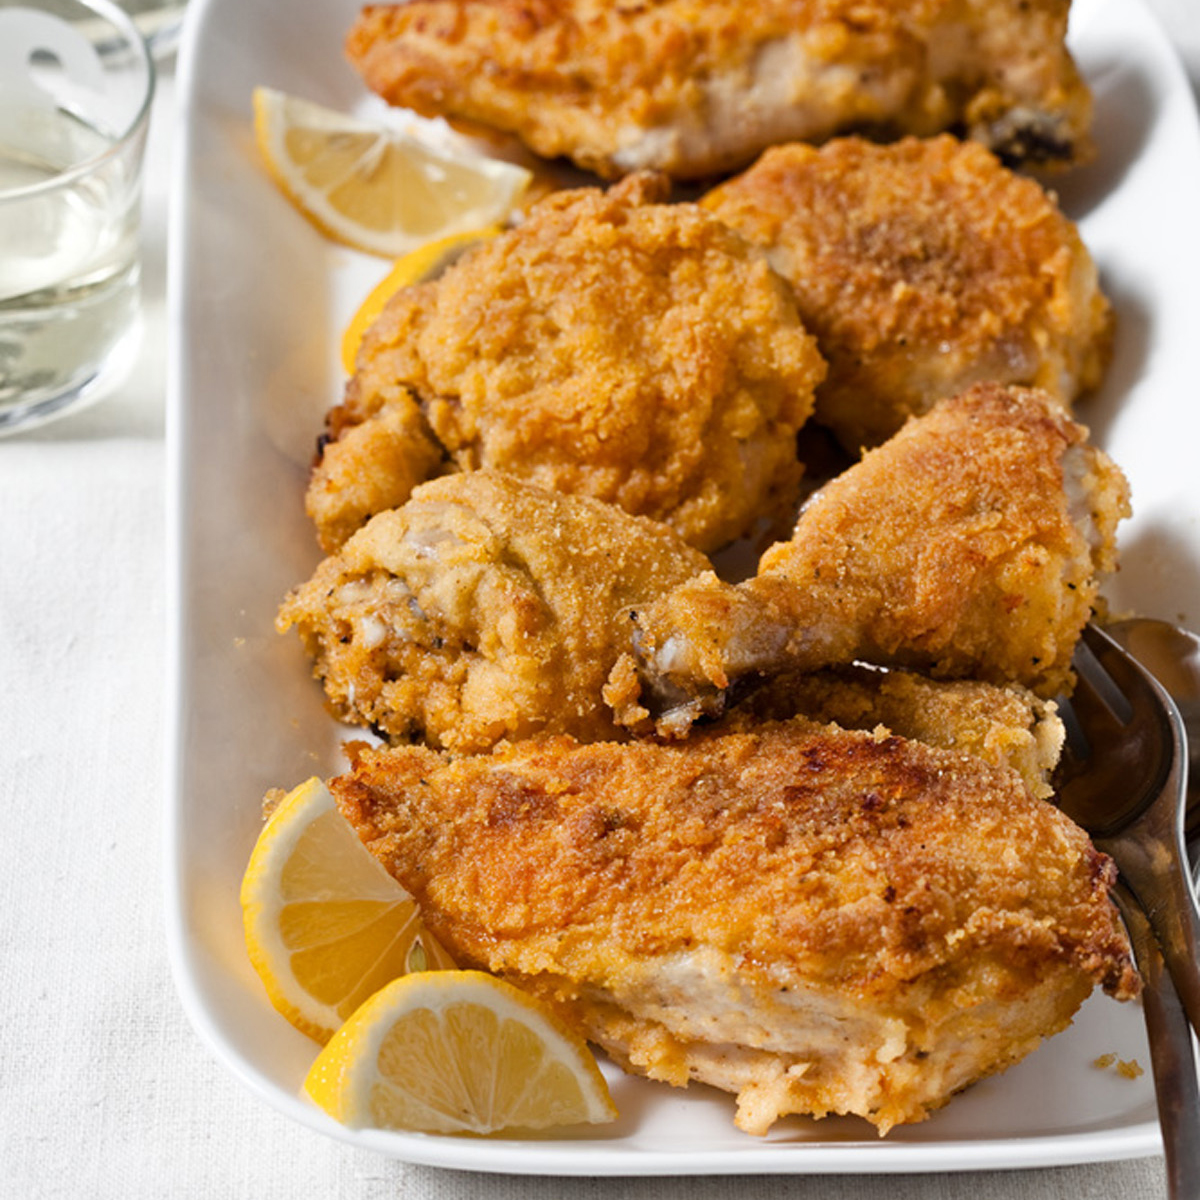 Oven-Fried Chicken with a Polenta Crust